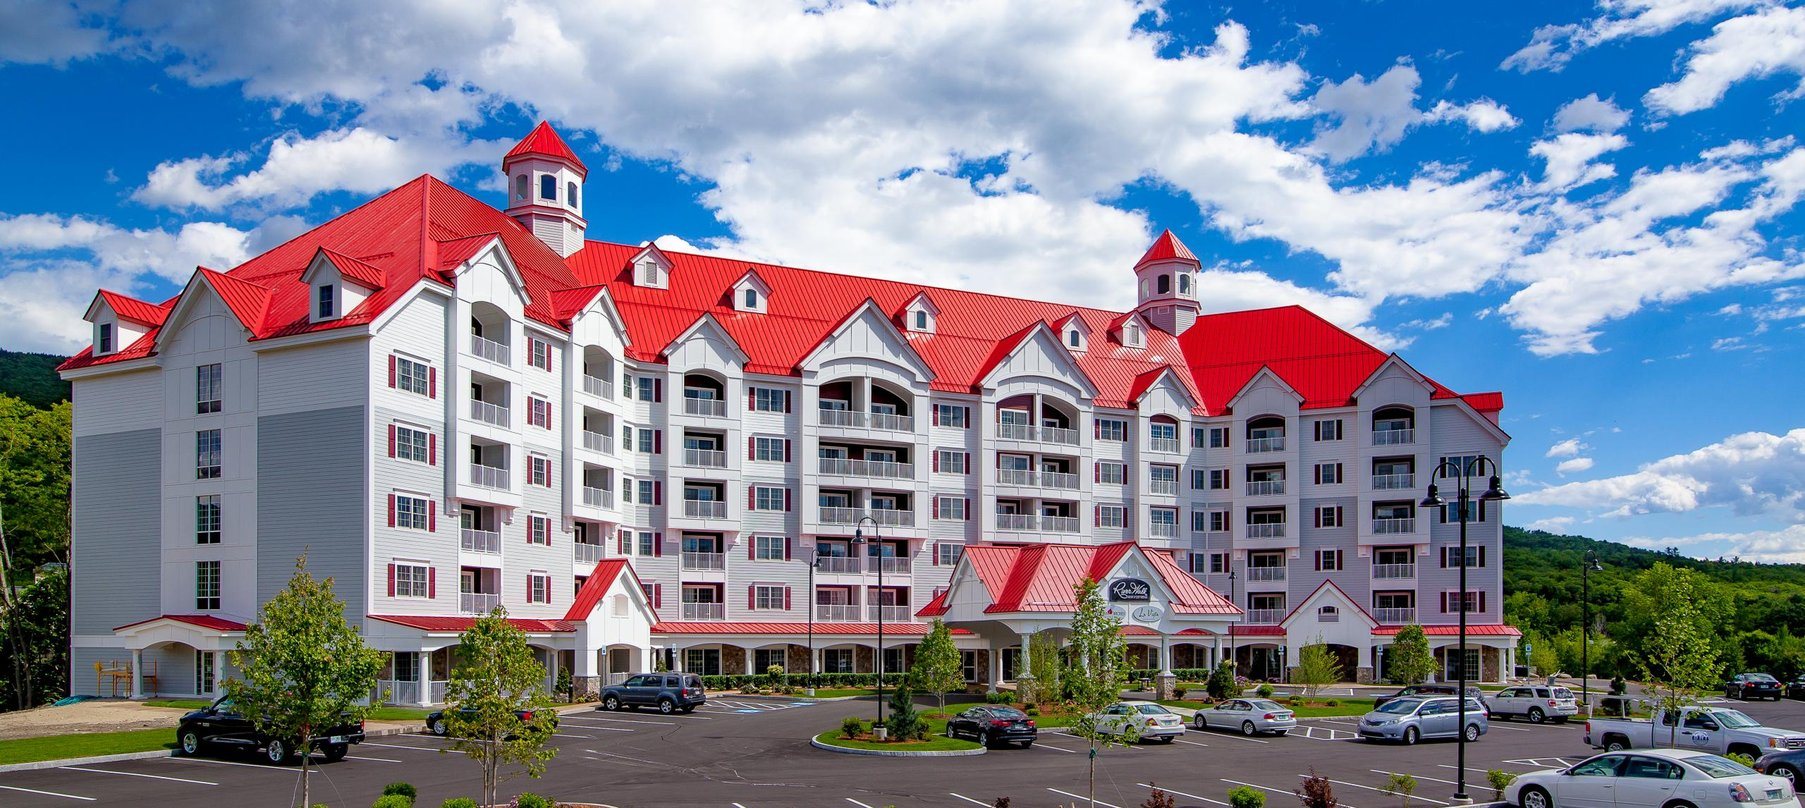 RiverWalk Resort at Loon Mountain in Lincoln NH